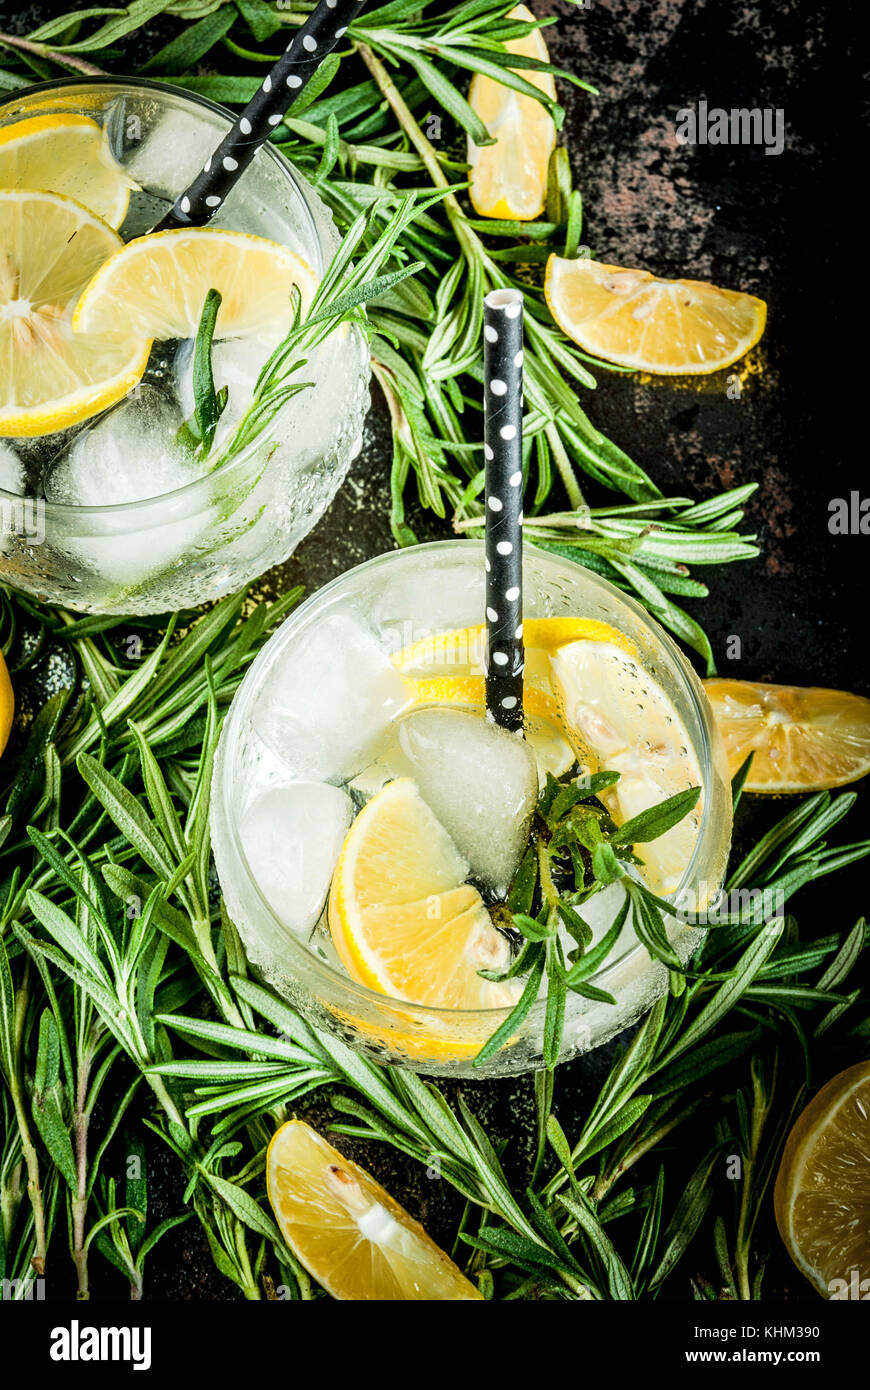 Cold lemonade or alcohol vodka cocktail with lemon and rosemary, On a black rusty metallic background, copy space - Stock Image